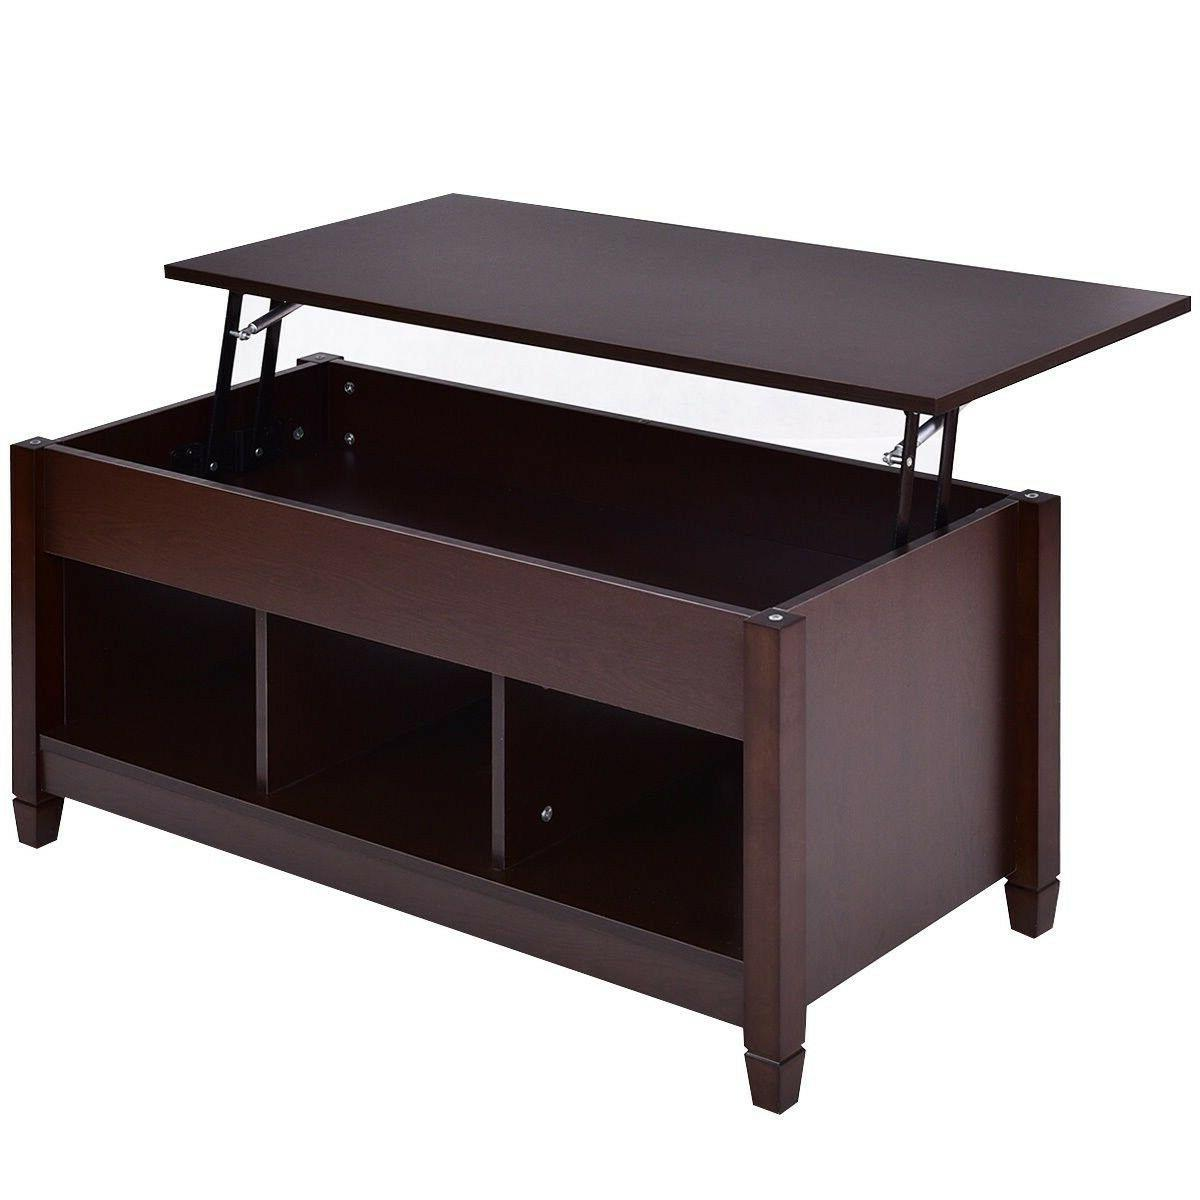 Tangkula Lift Top Coffee Table Modern Living Room Furniture